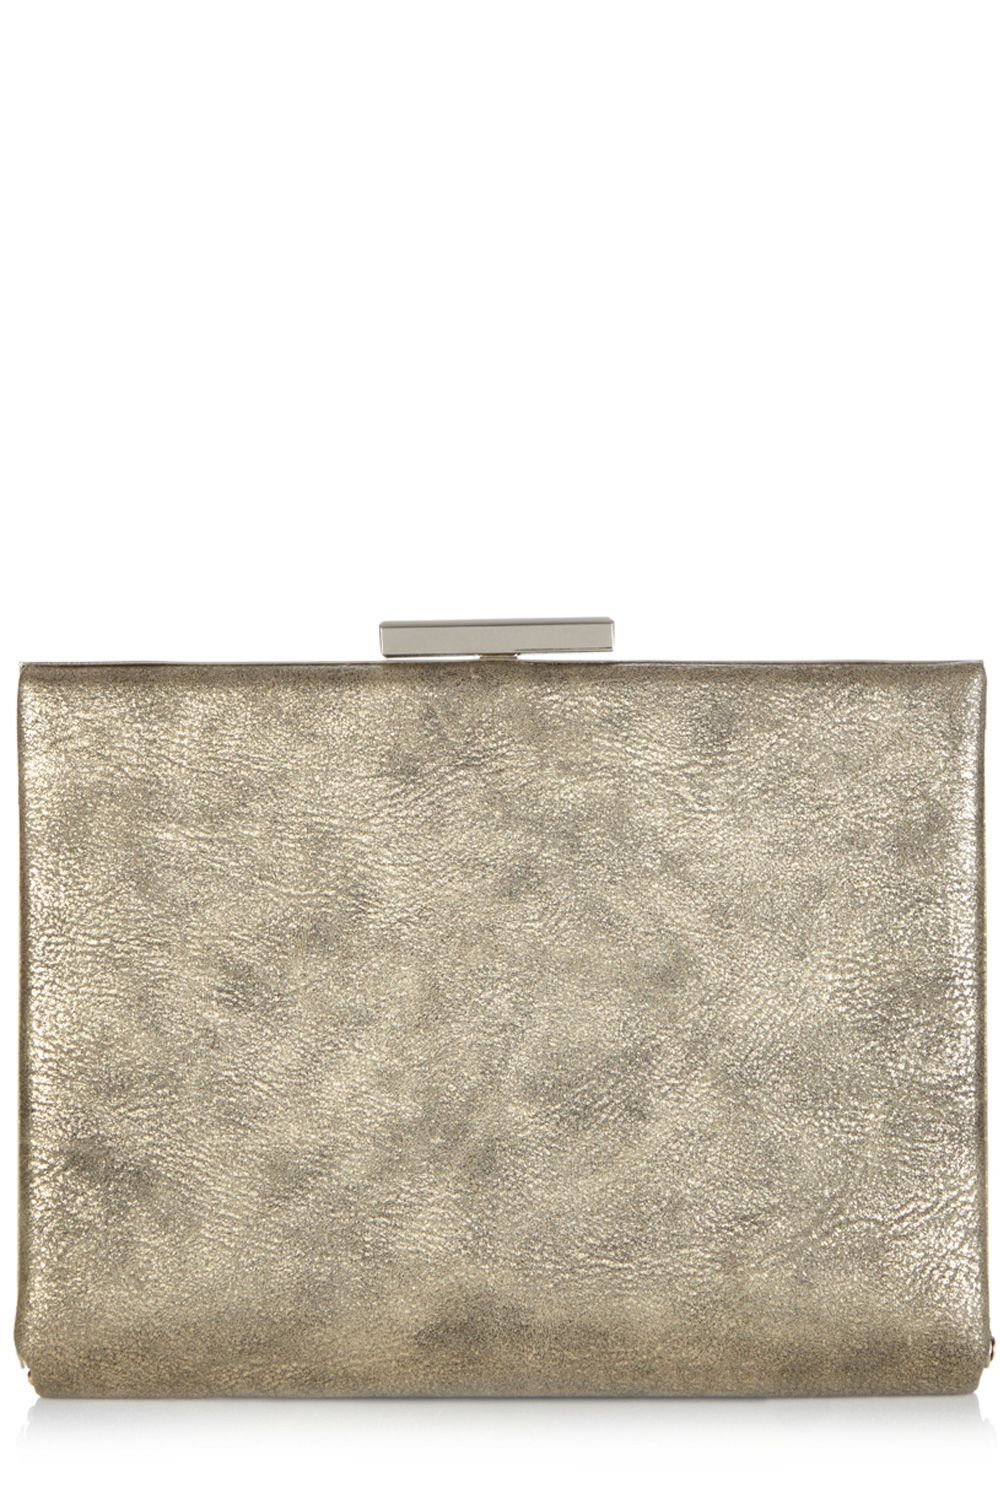 50`s frame clutch bag